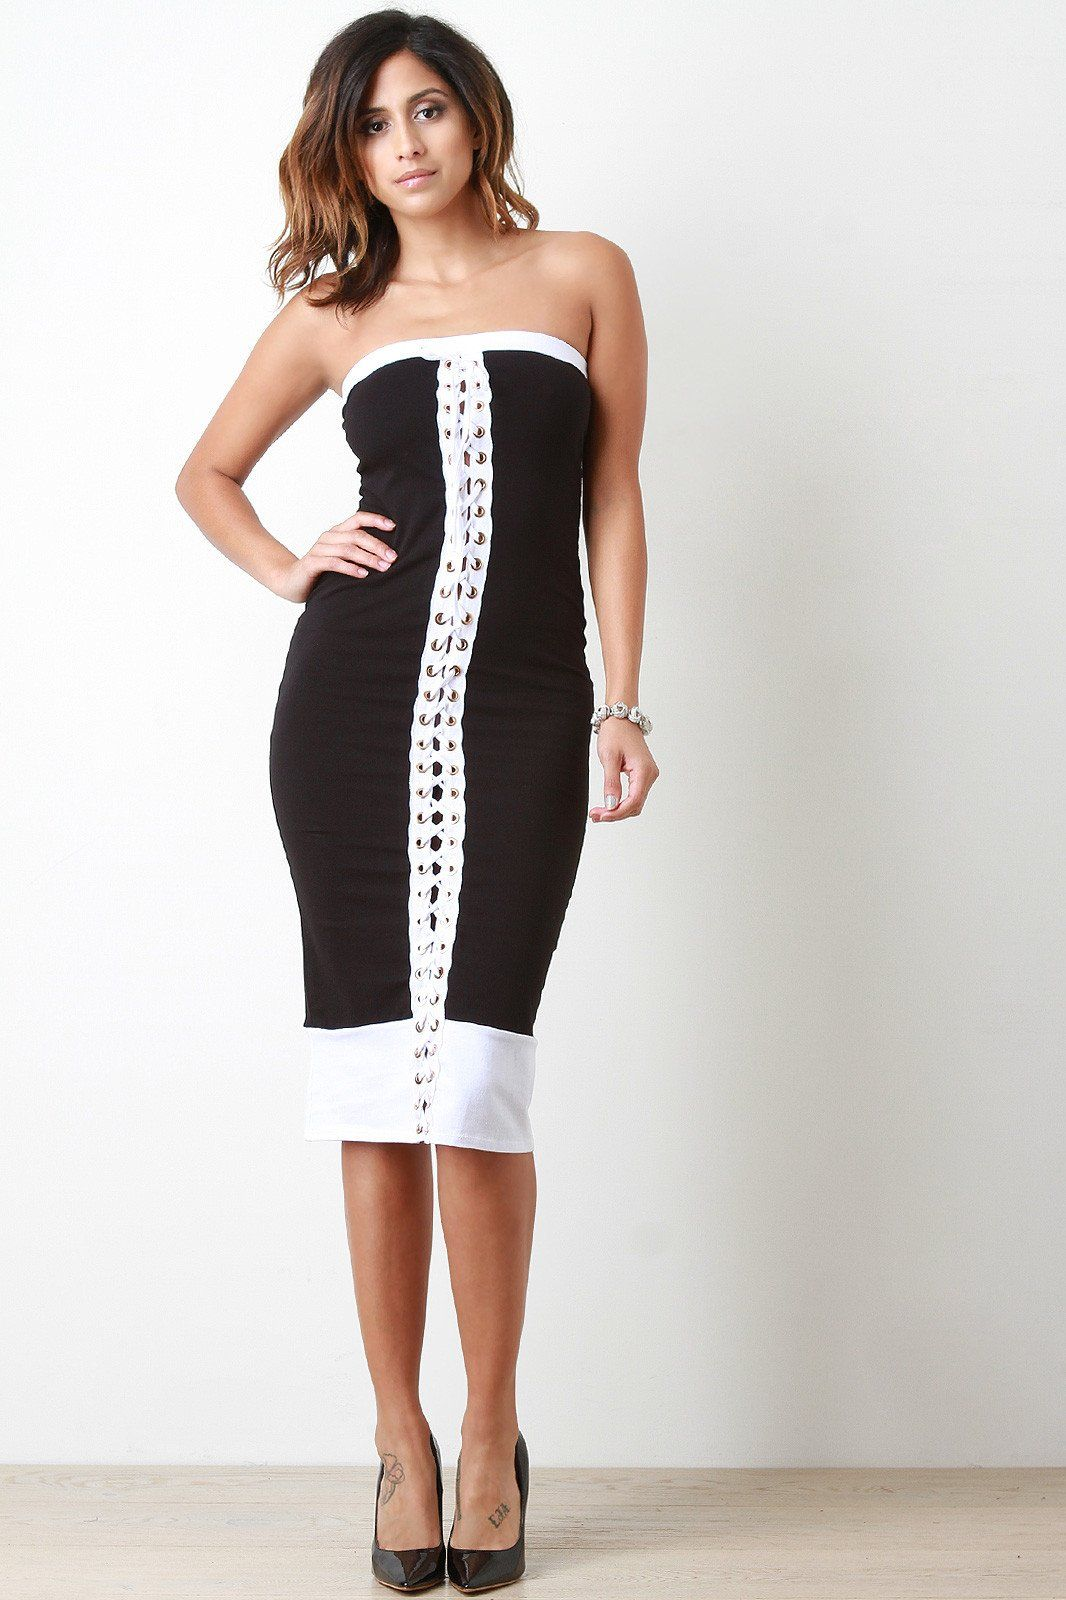 Lace short dress styles in nigeria  Grommets Corset Lace Up Strapless Midi Dress  Products  Pinterest